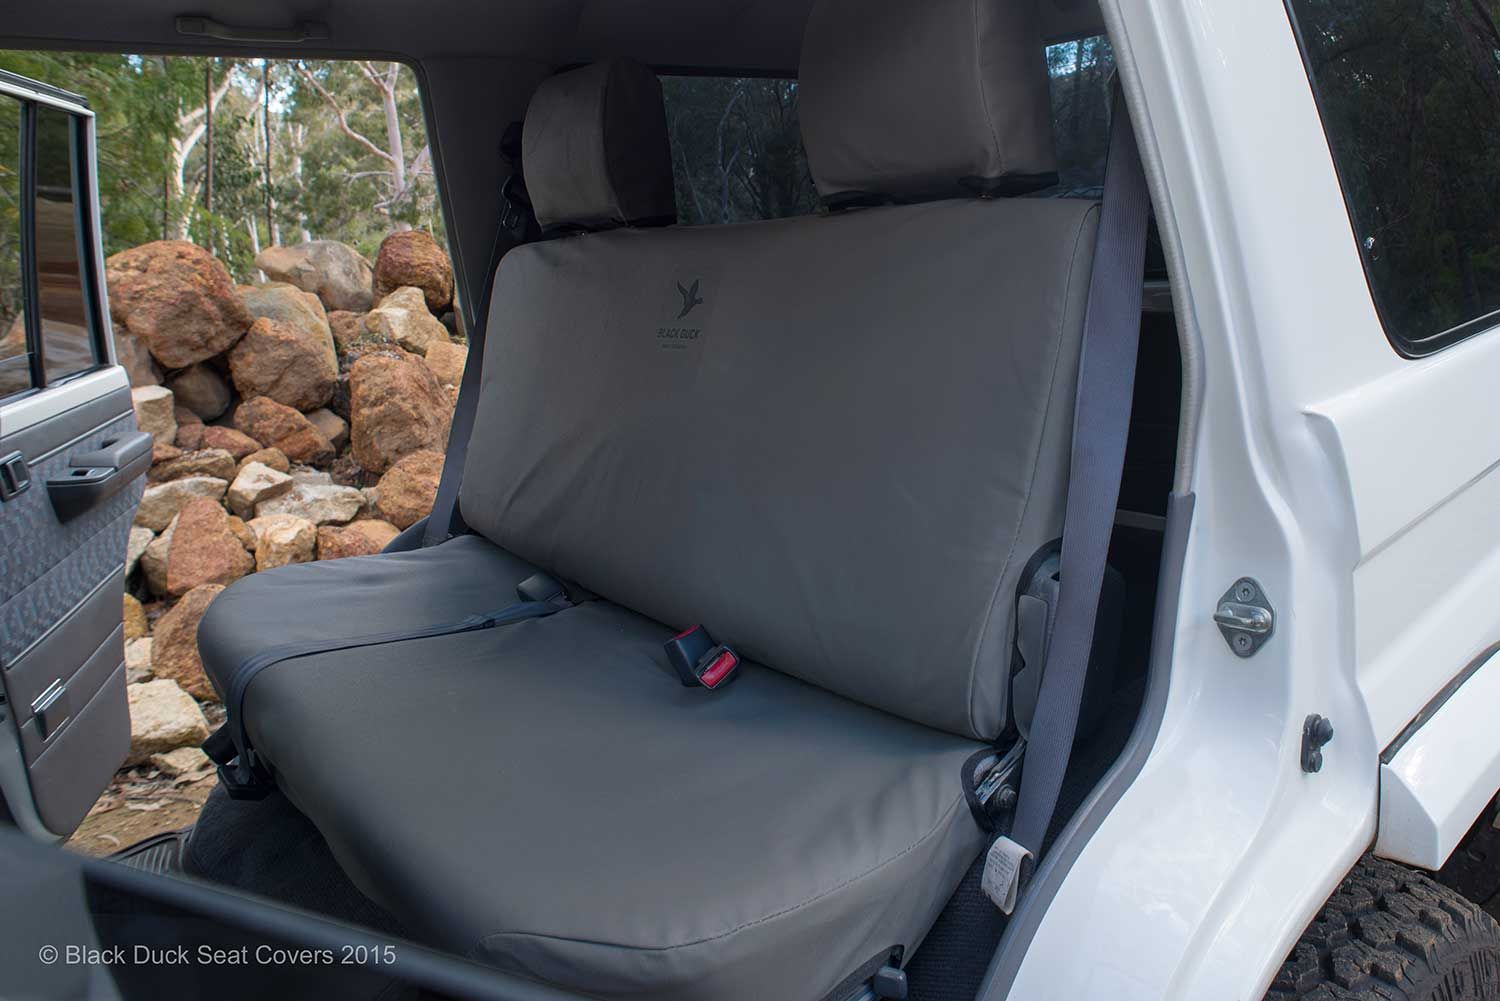 Black Duck Seat Covers Suitable For Rear Bench